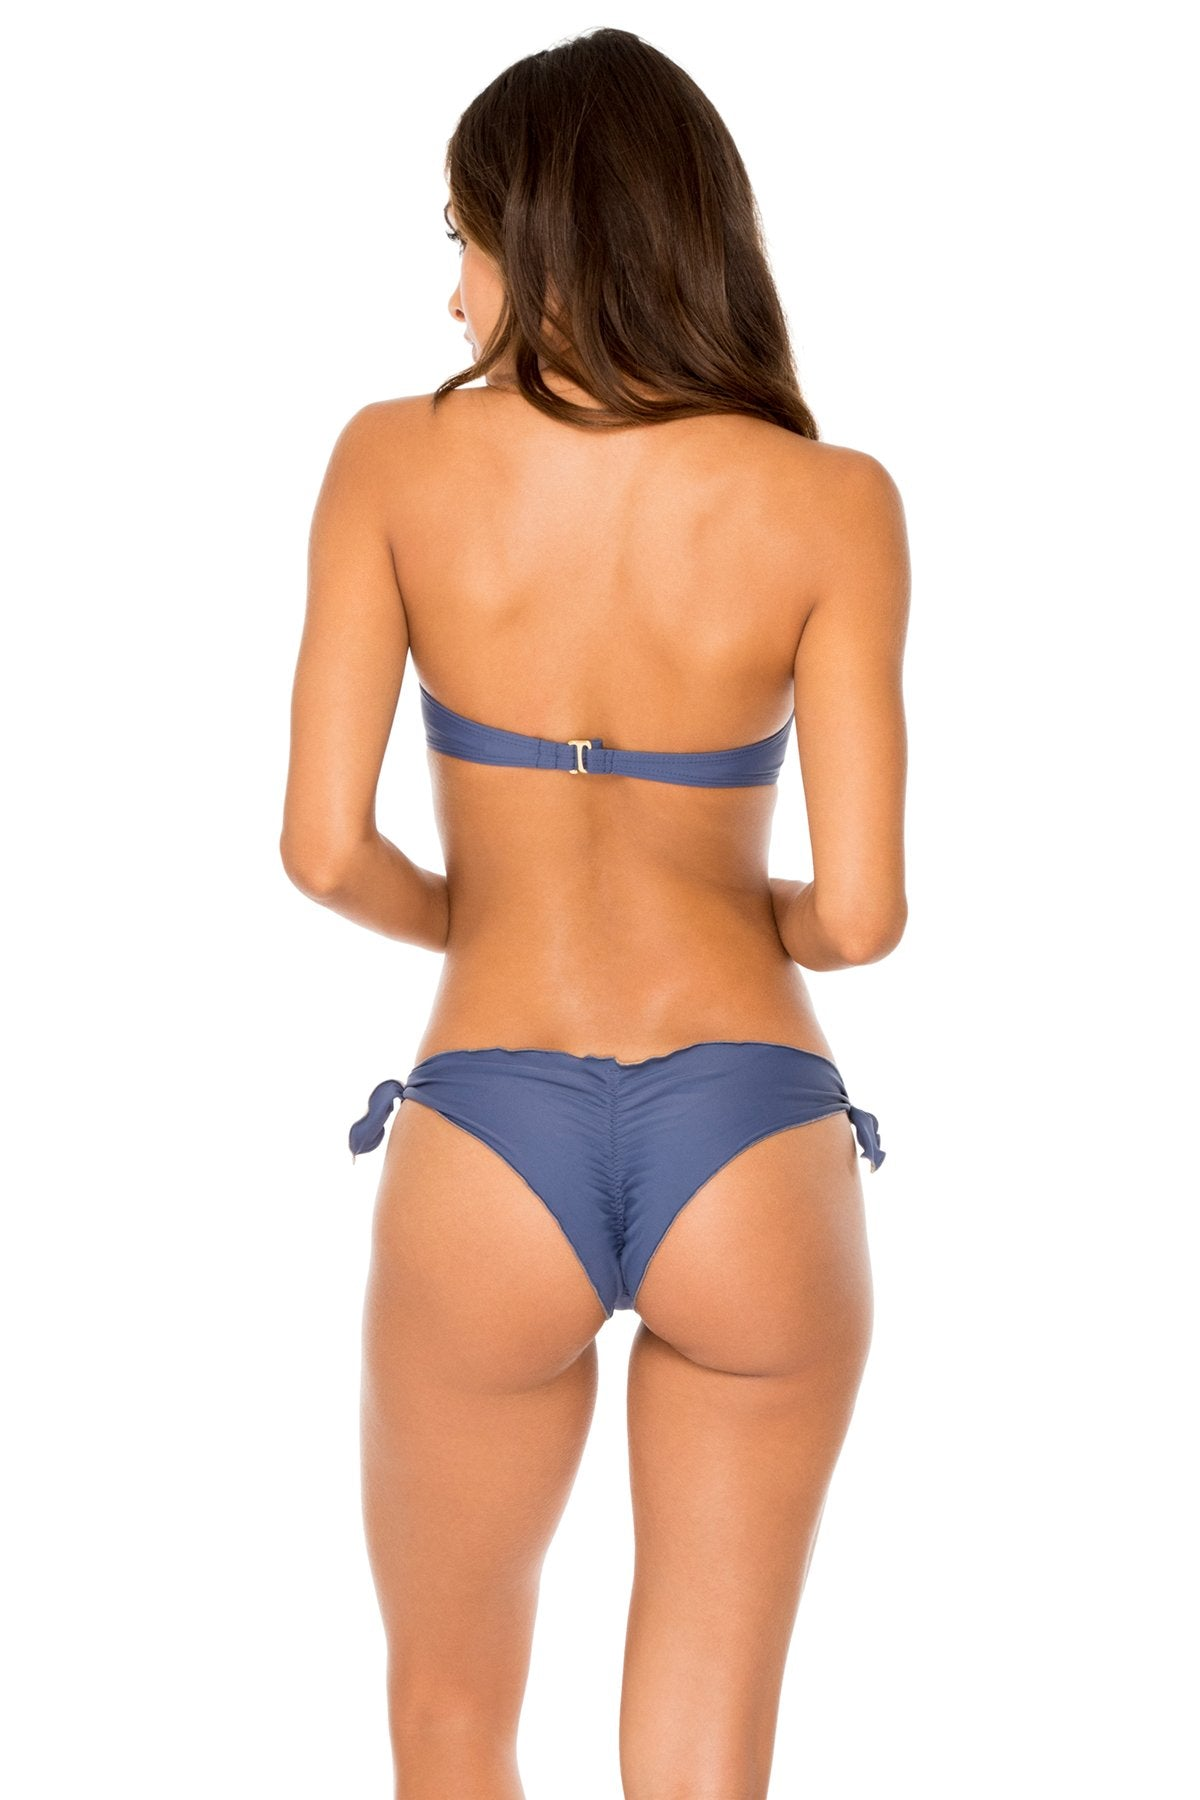 COSITA BUENA - Underwire Push Up Bandeau Top & Cayo Coco Brazilian Bottom • Azulejos